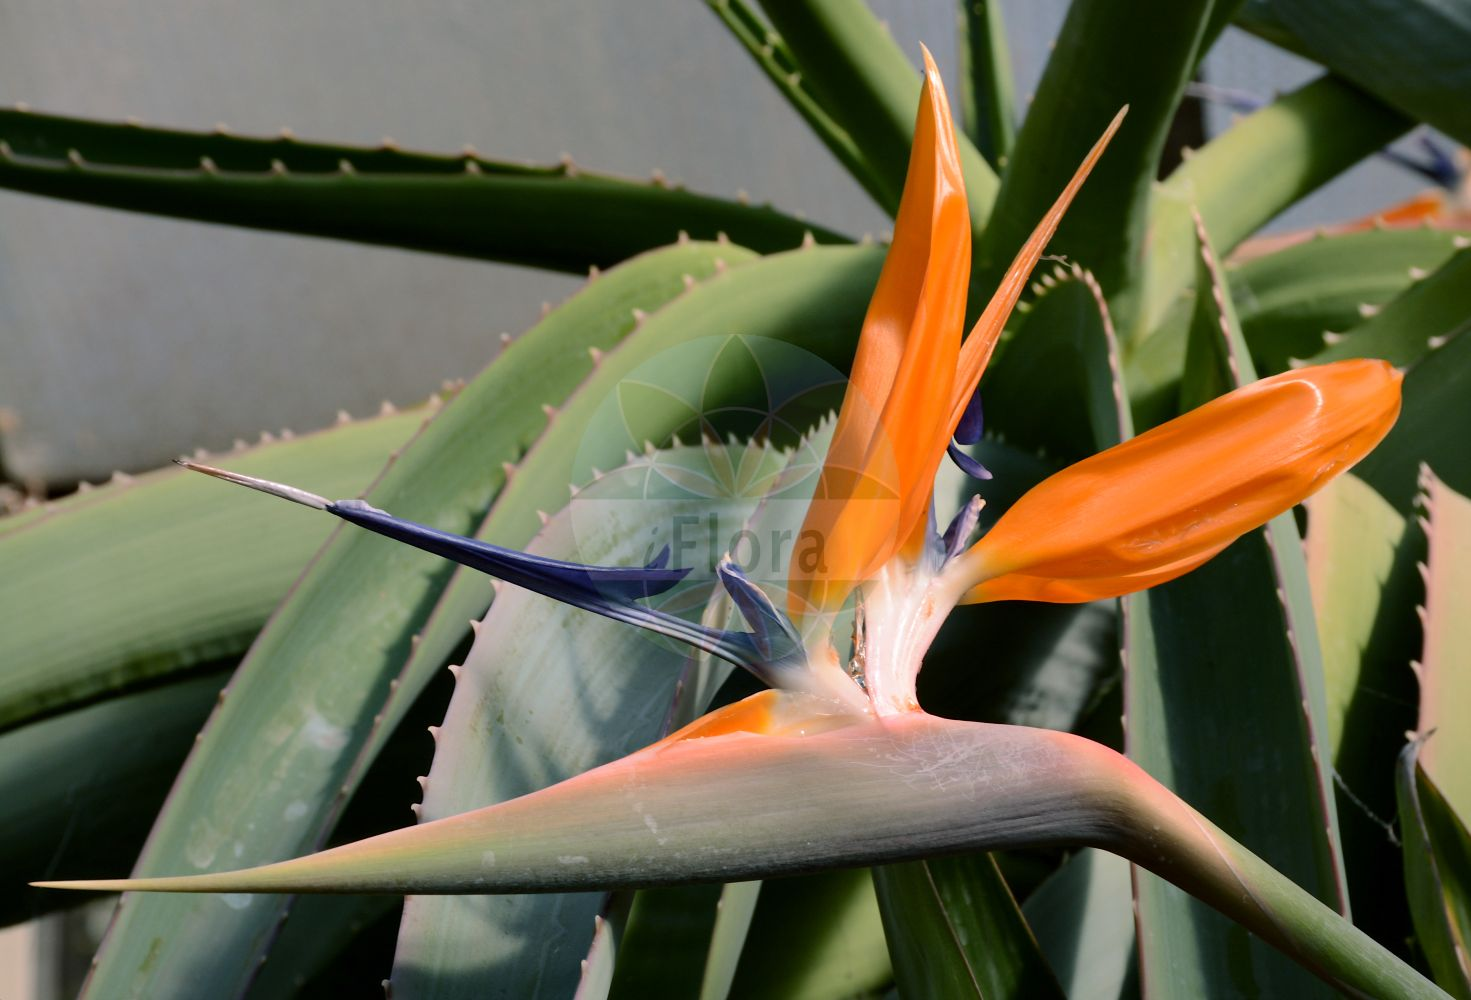 Foto von Strelitzia. Das Bild zeigt Blatt und Bluete. Das Foto wurde in Koeln, Nordrhein-Westfalen, Deutschland aufgenommen. ---- Photo of Strelitzia.The image is showing leaf and flower.The picture was taken in Cologne, North Rhine-Westphalia, Germany.(Strelitzia,Strelitzia,Strelitziaceae,Blatt,Bluete,leaf,flower)